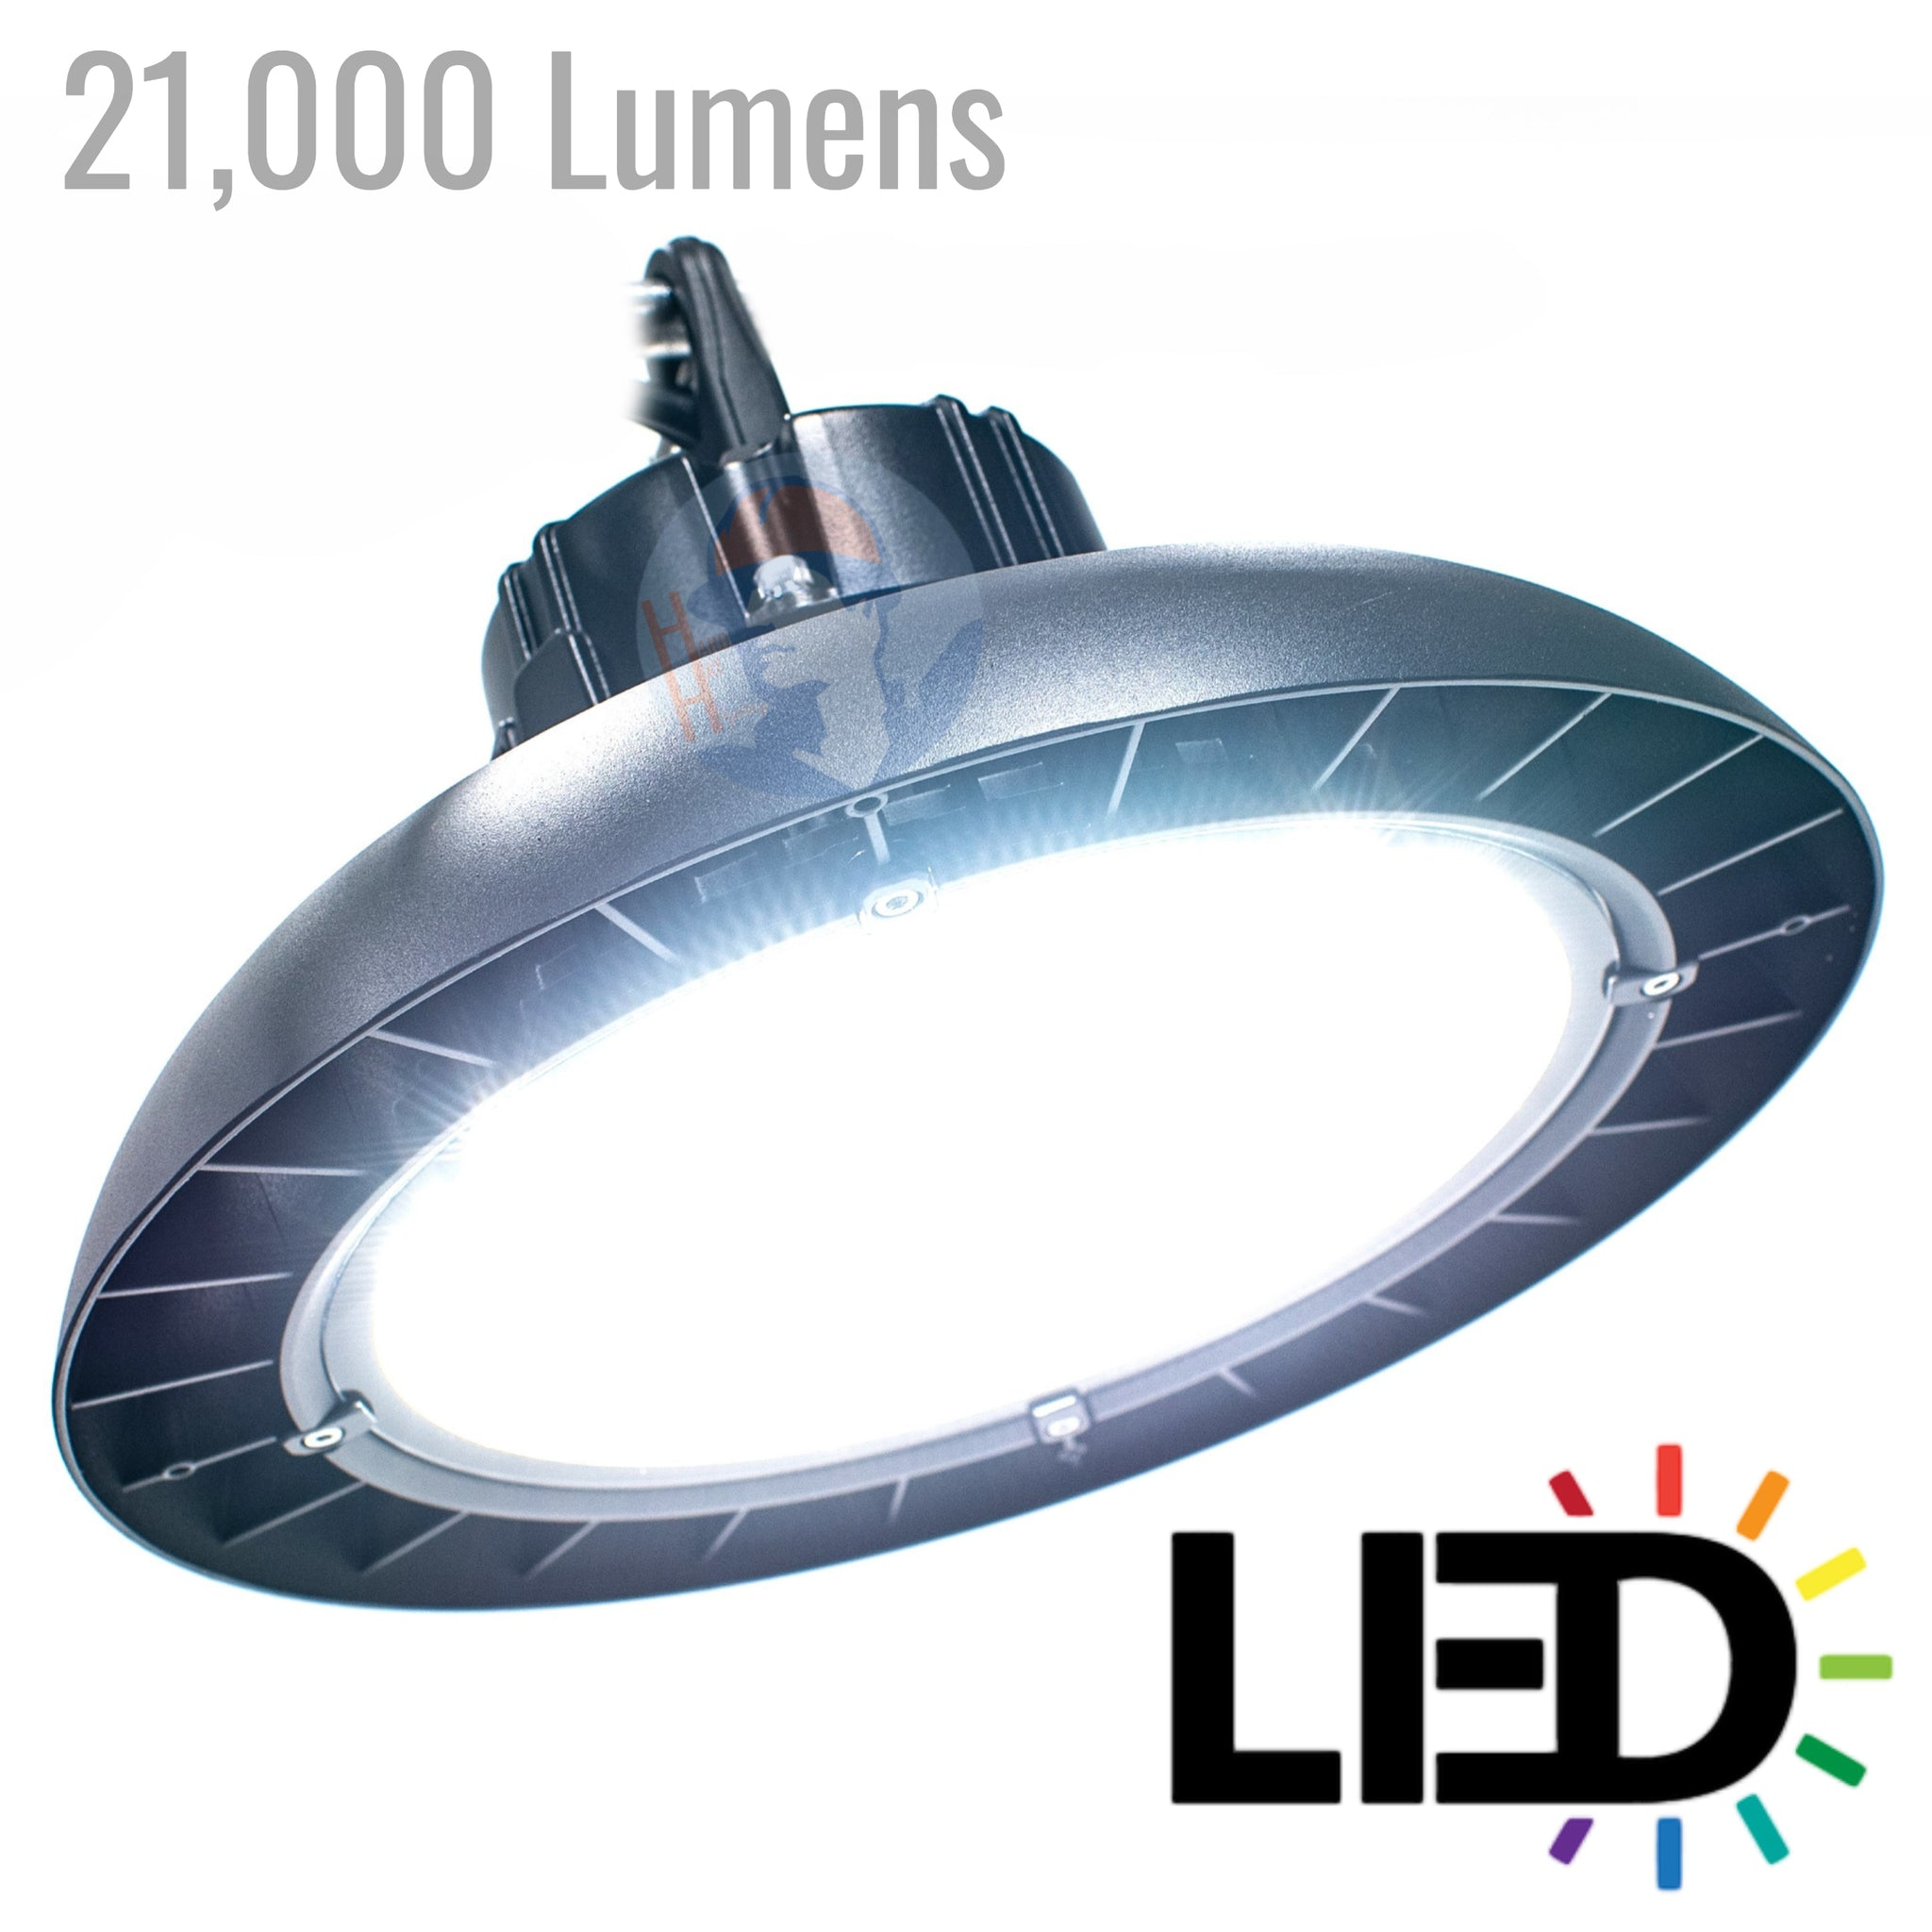 Led Sniper 150 Best Warehouse Shop Light Hardhat Lighting